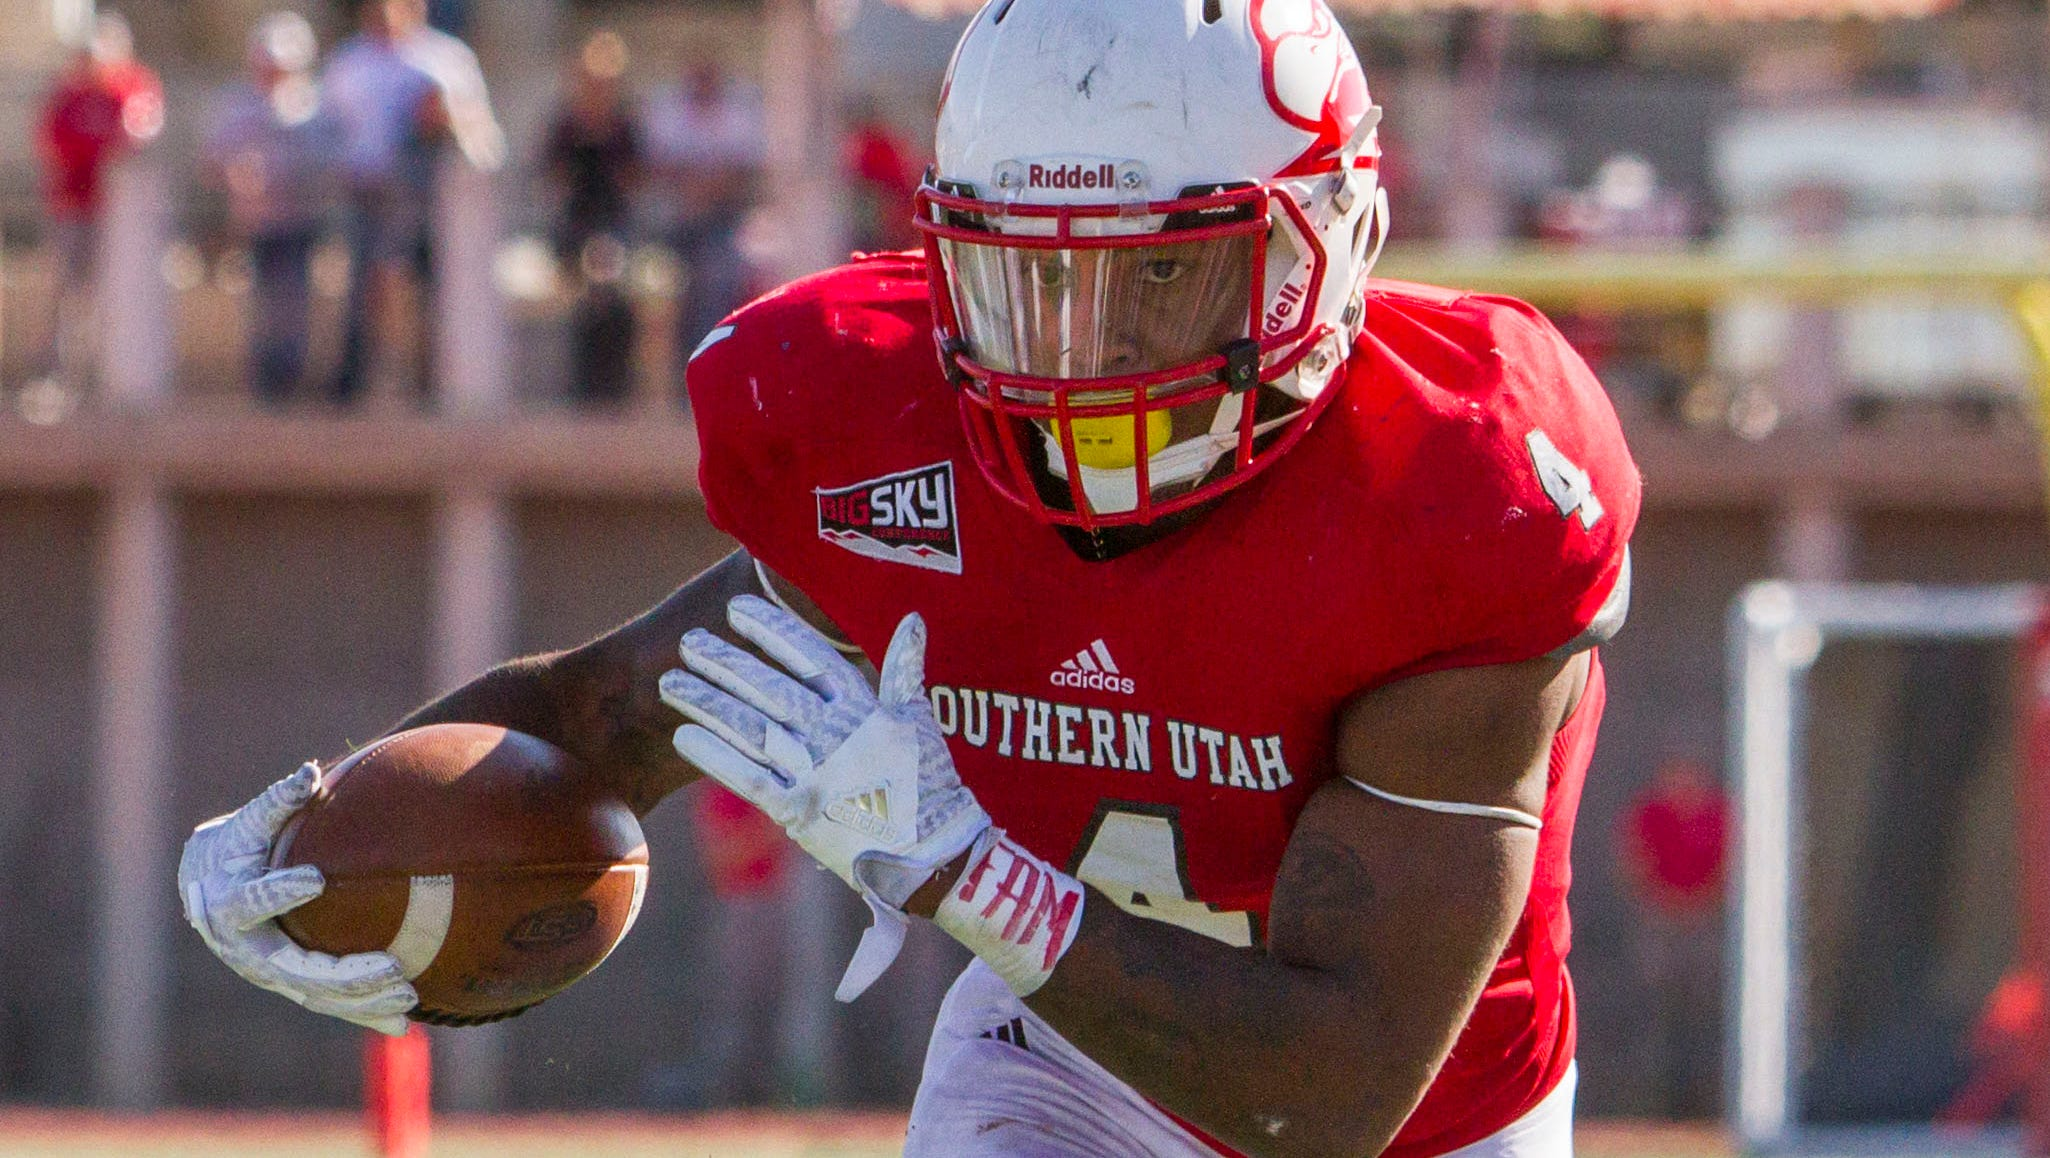 SUU football: Seniors have mixed emotions in final home game